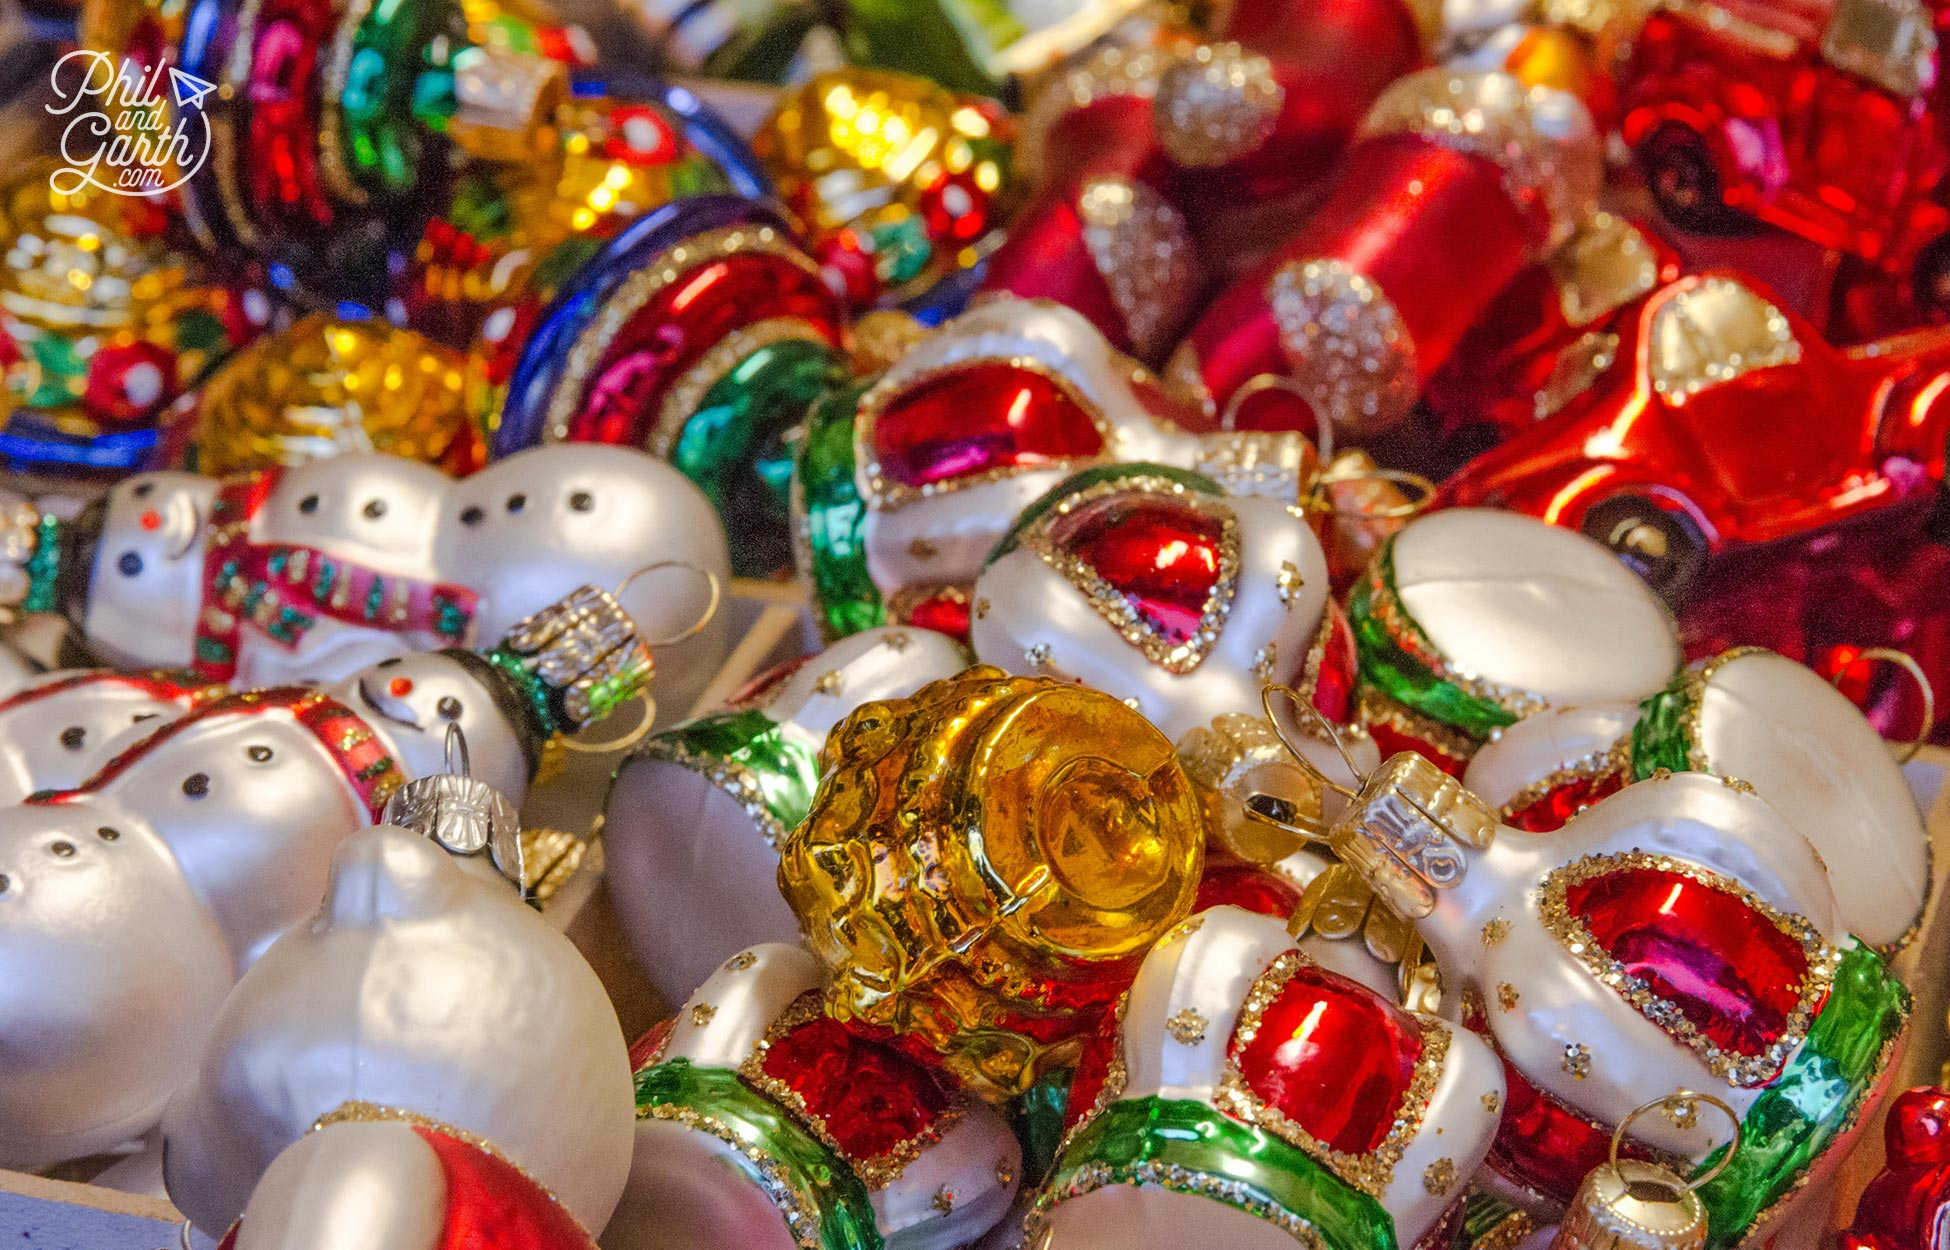 Collect Christmas tree ornaments